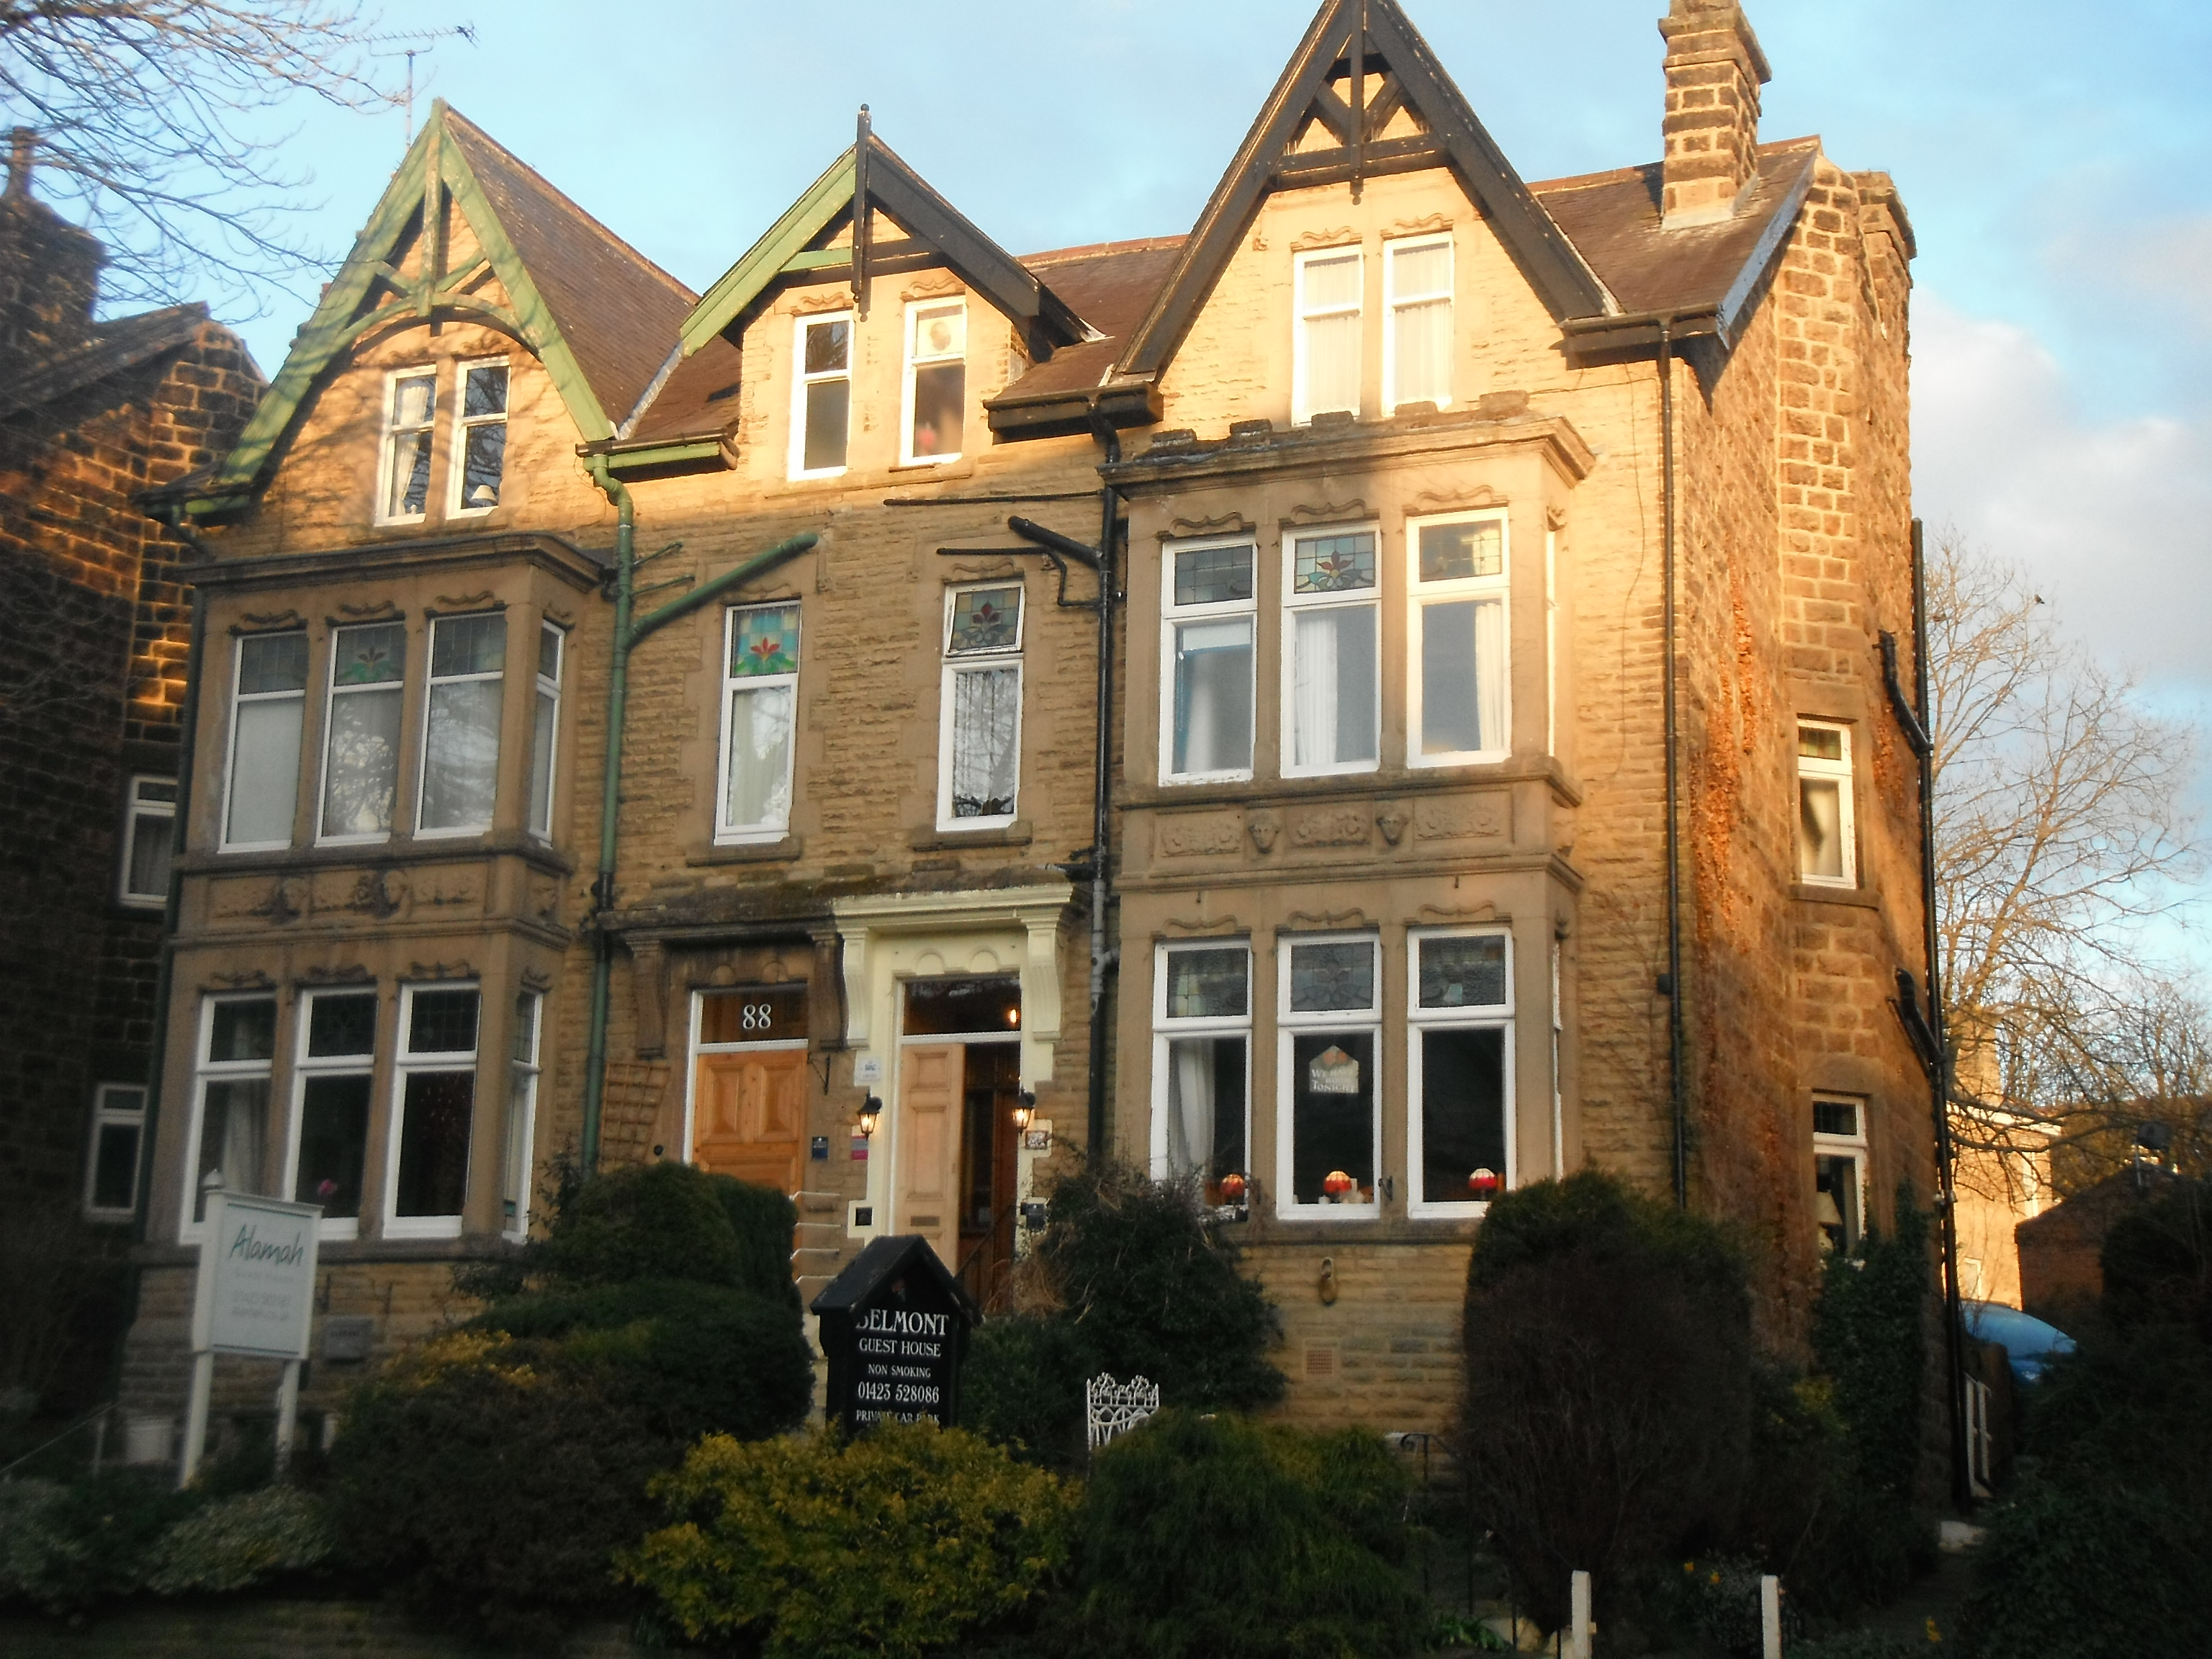 Photo taken by me – The Belmont Guest House, Harrogate